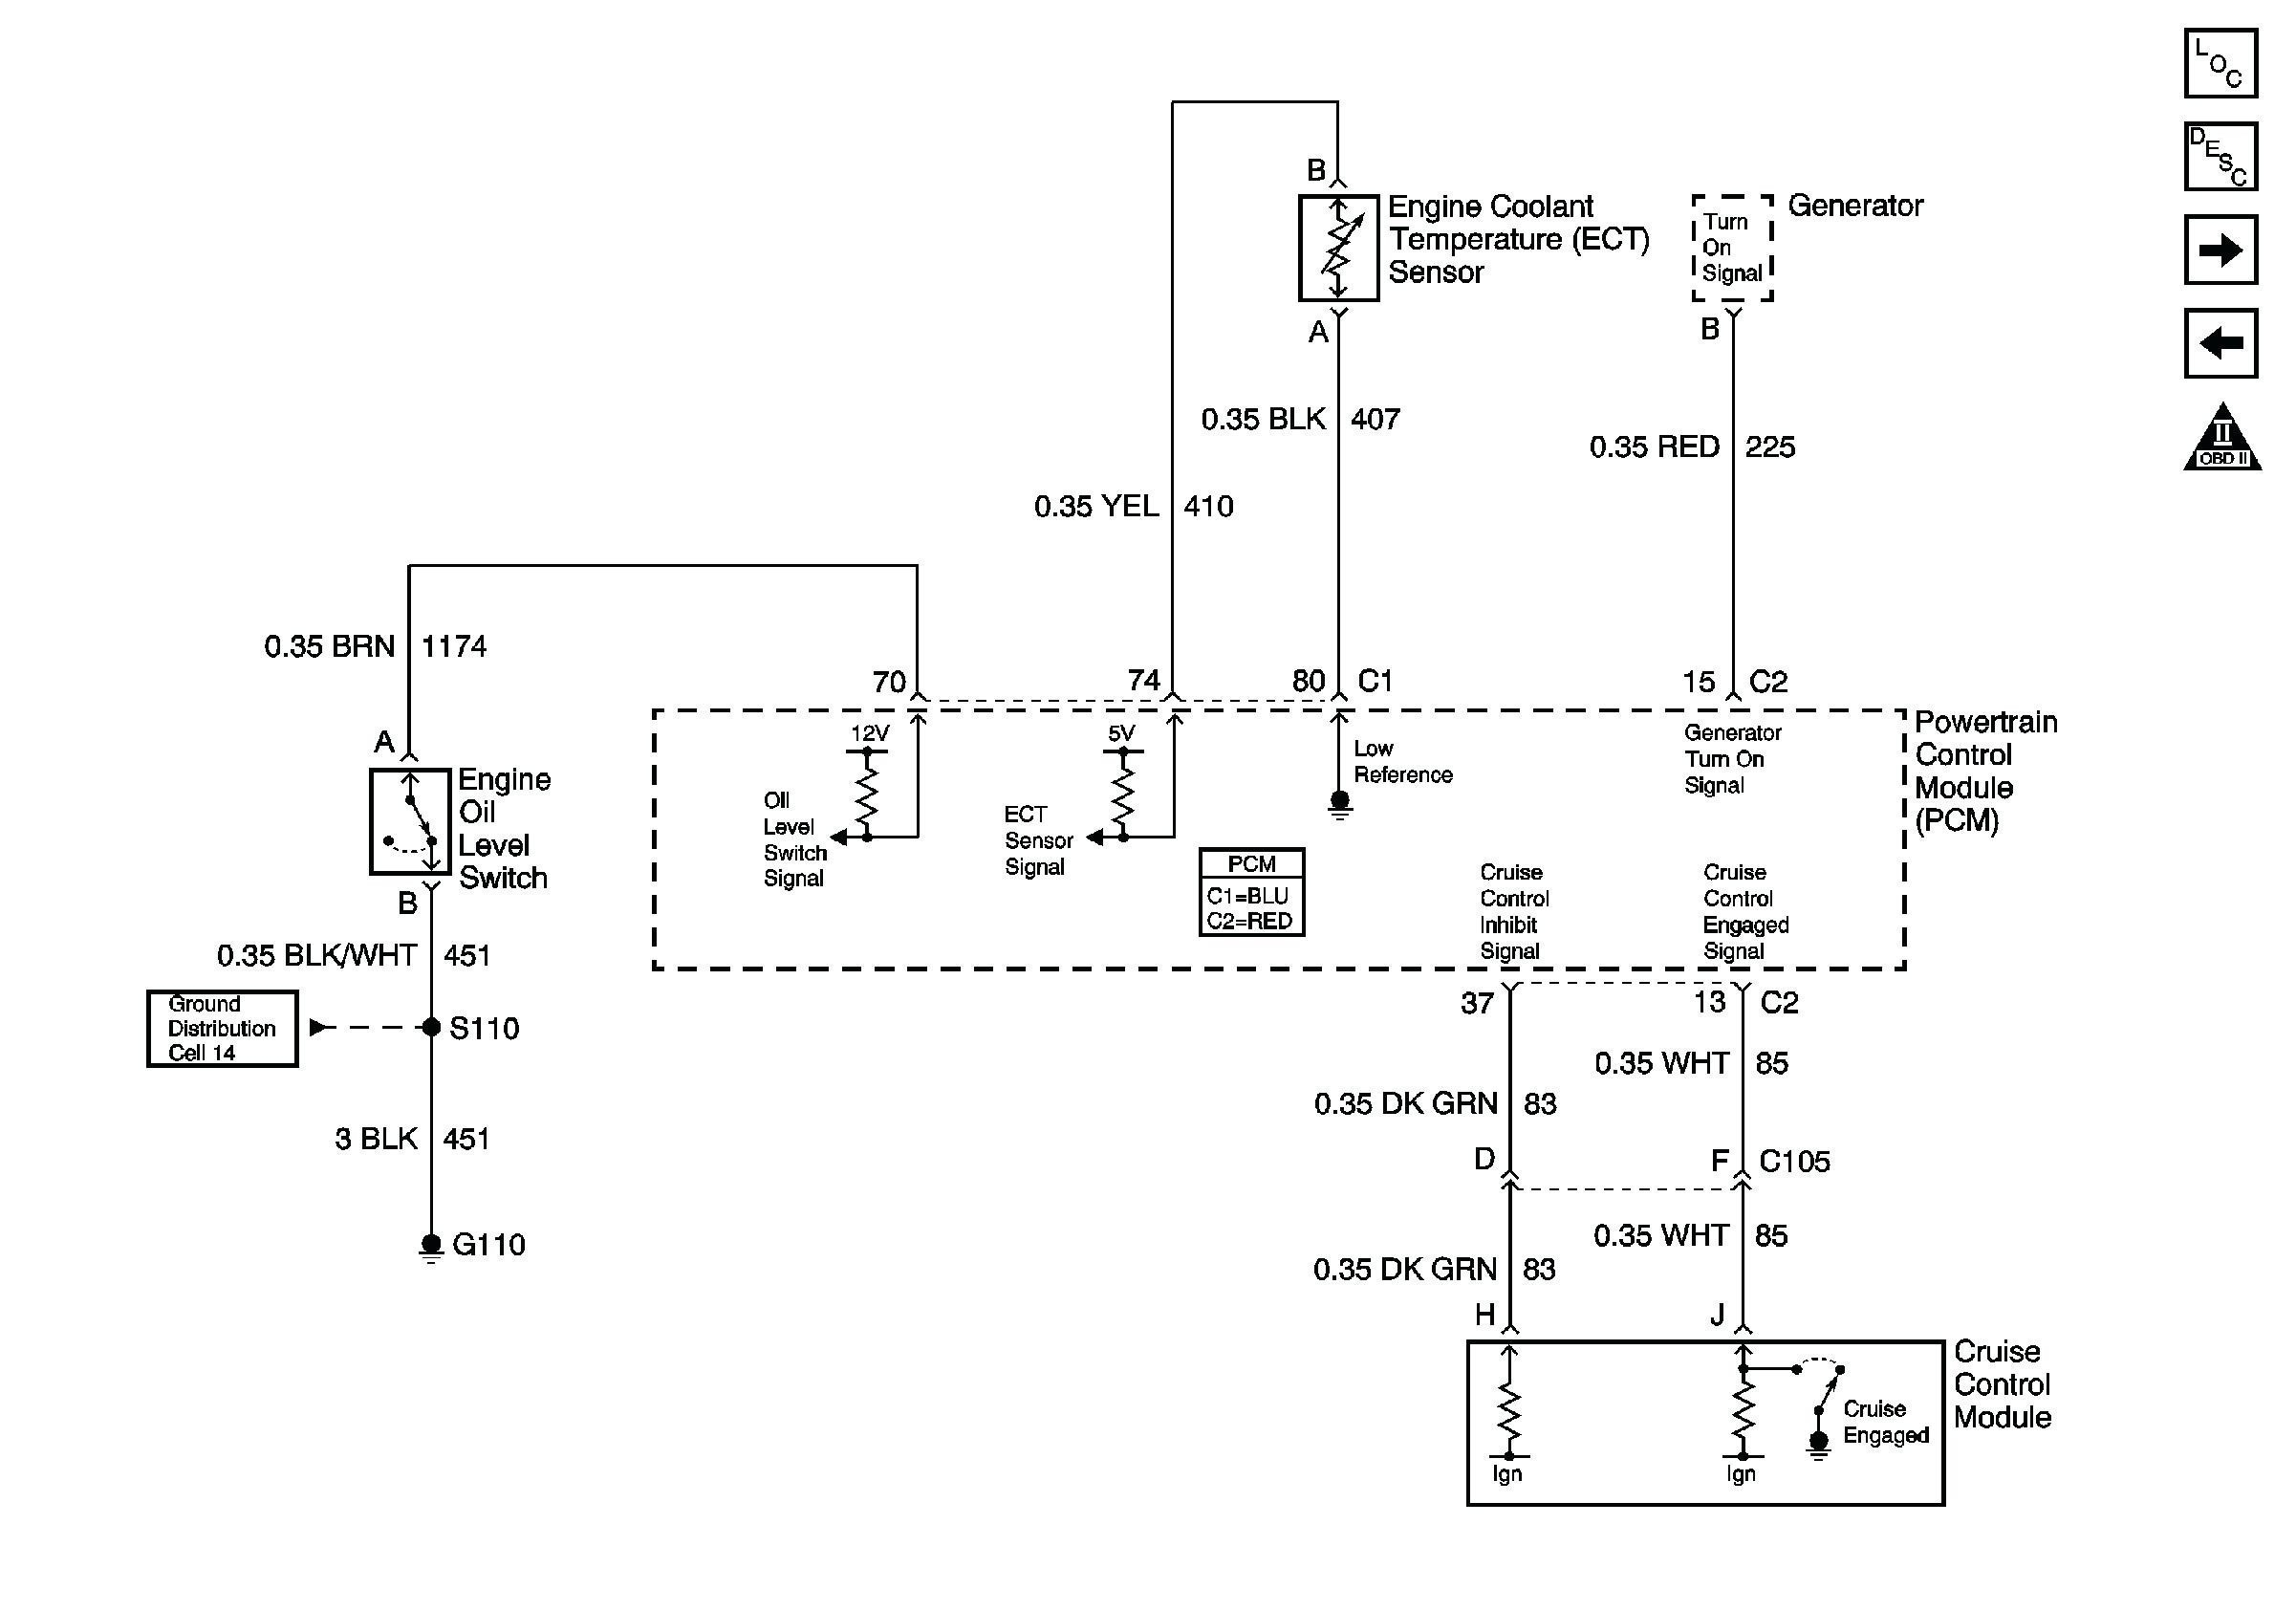 ac delco alternator wiring diagram Collection-Vt Alternator Wiring Diagram Top rated Vt Alternator Wiring Diagram Best Wiring Diagram For Ac Delco 17-r